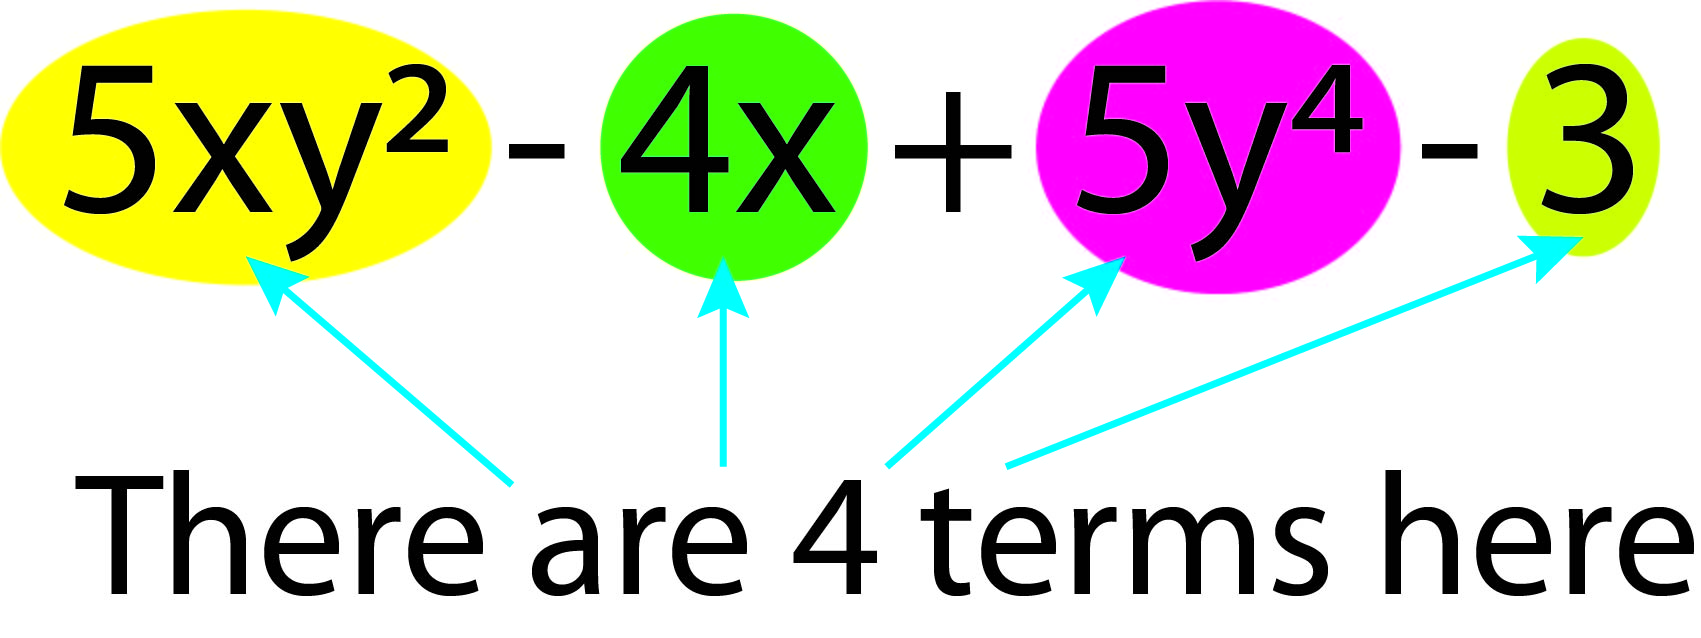 5xy-4x+5y-3 in this equation there are 4 terms